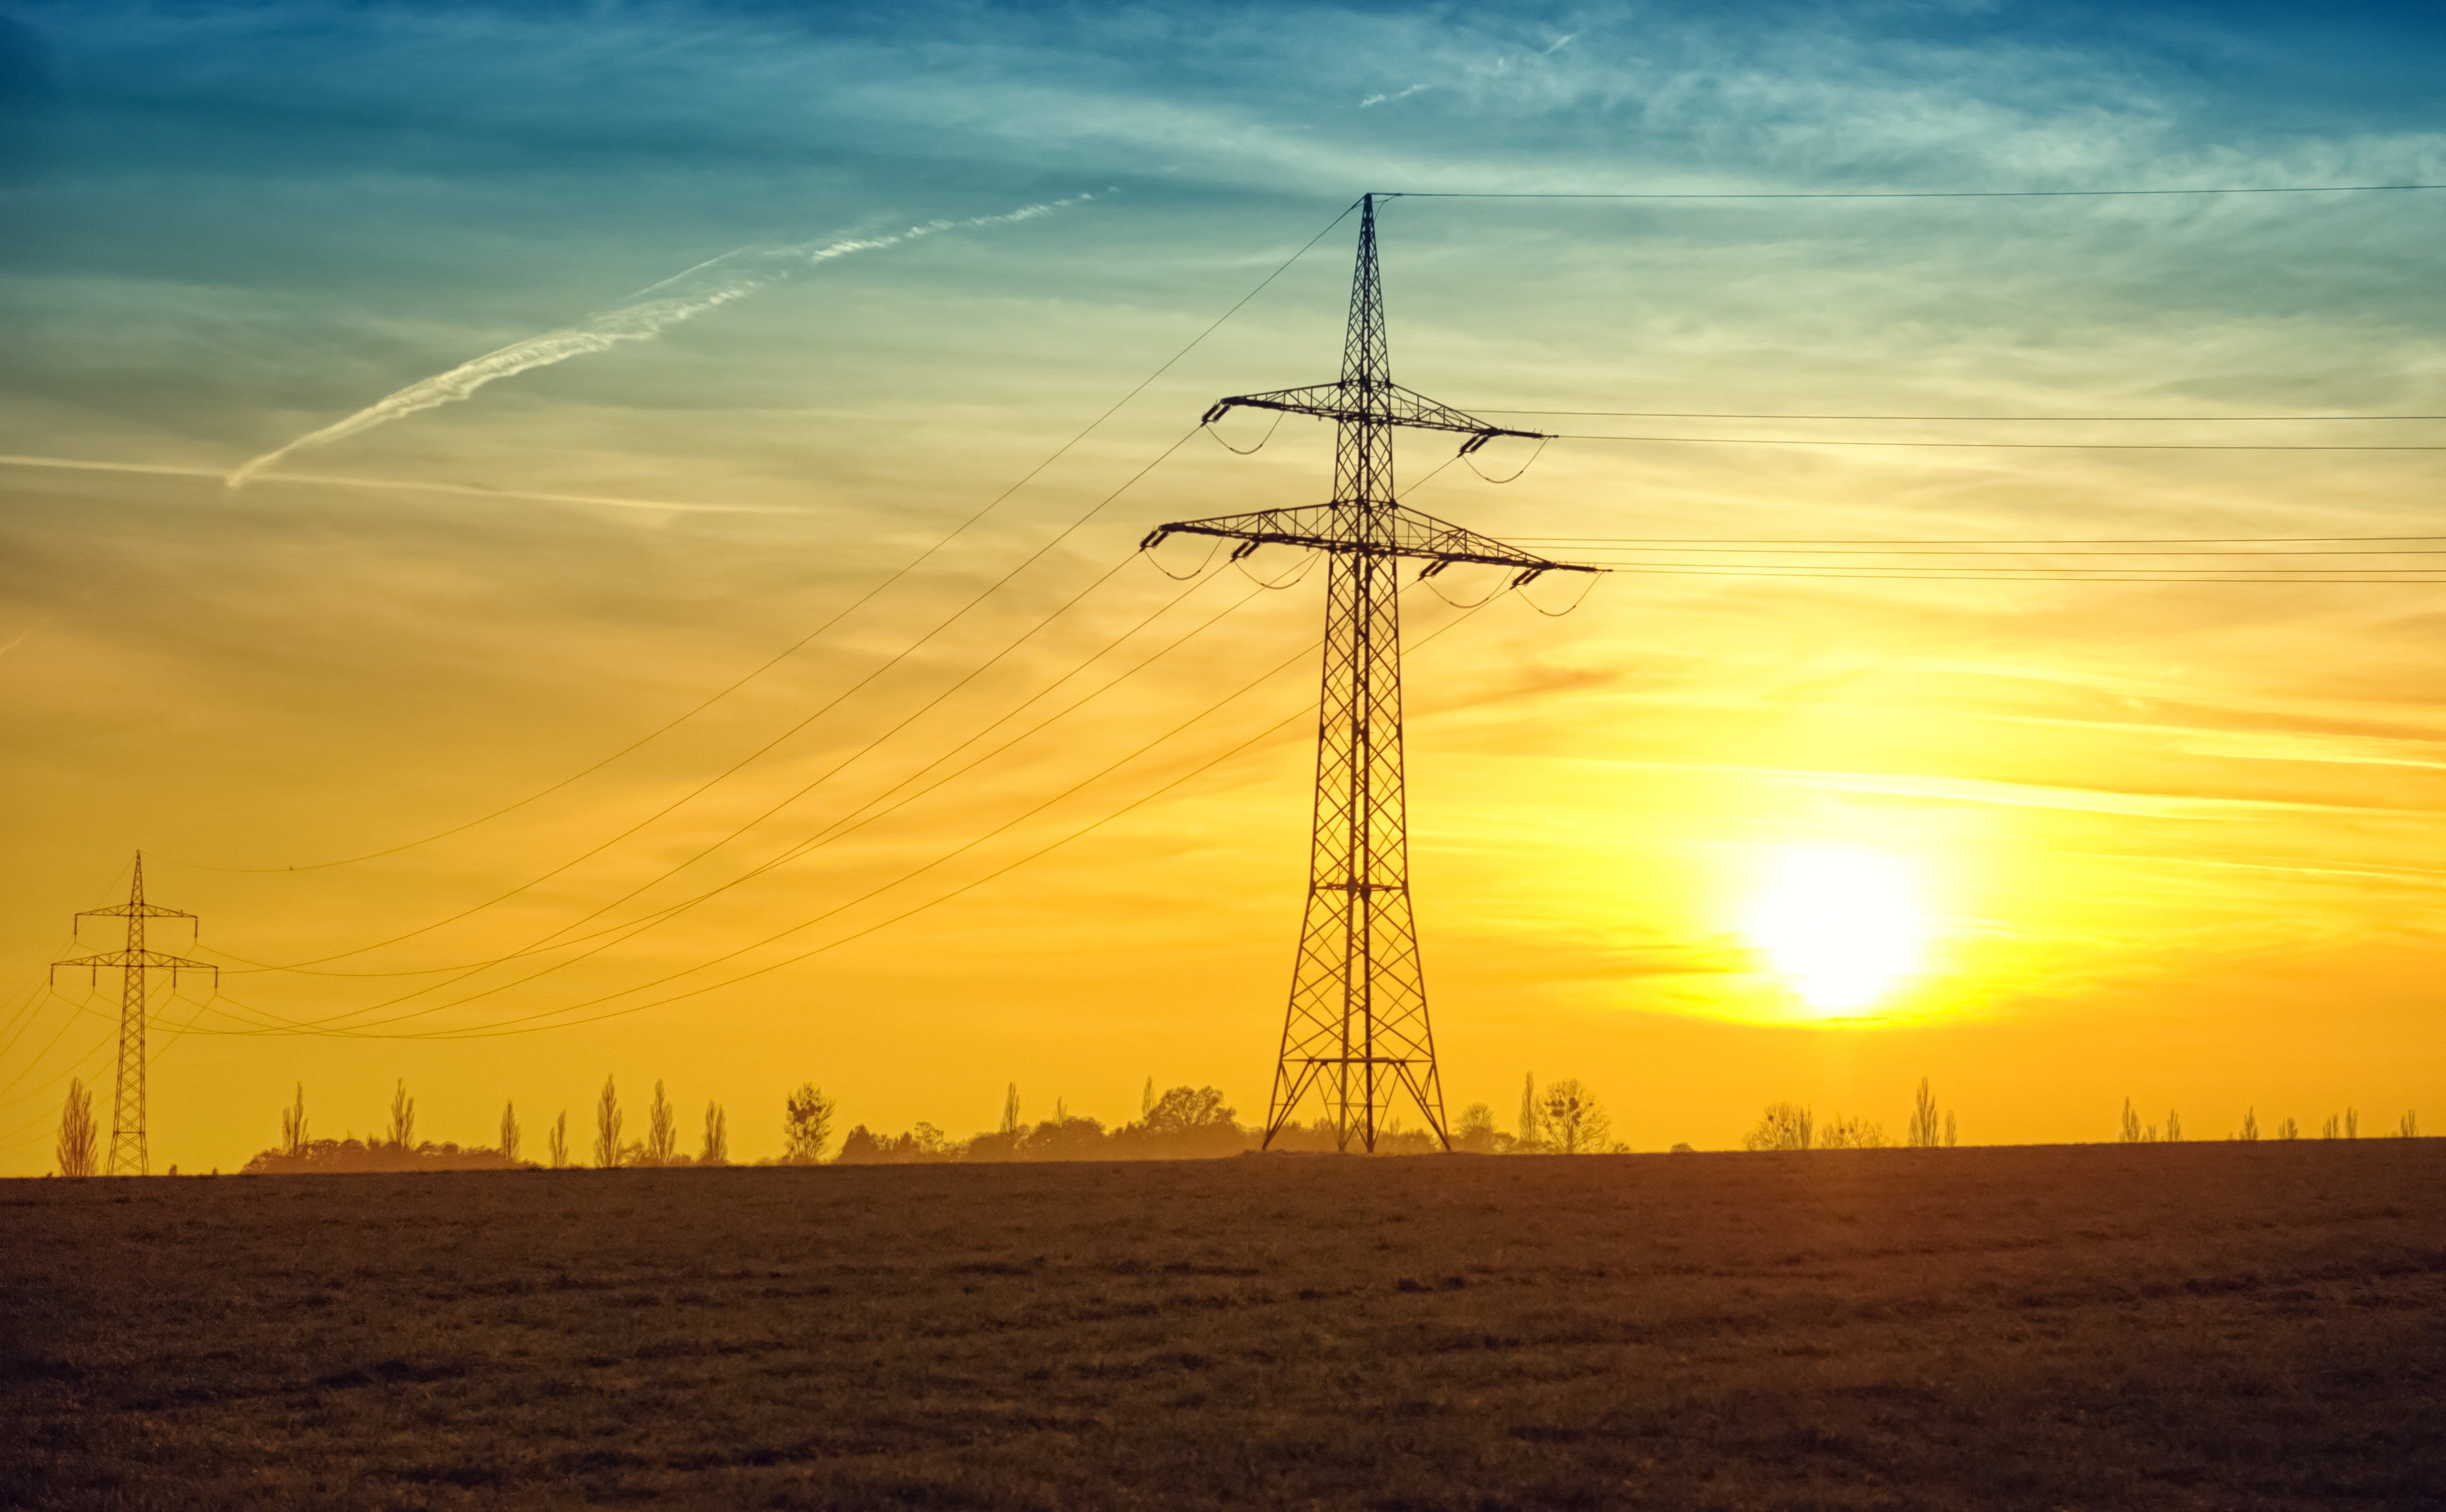 Brown Transmission Towers on Field during Sunset Landscape Photography